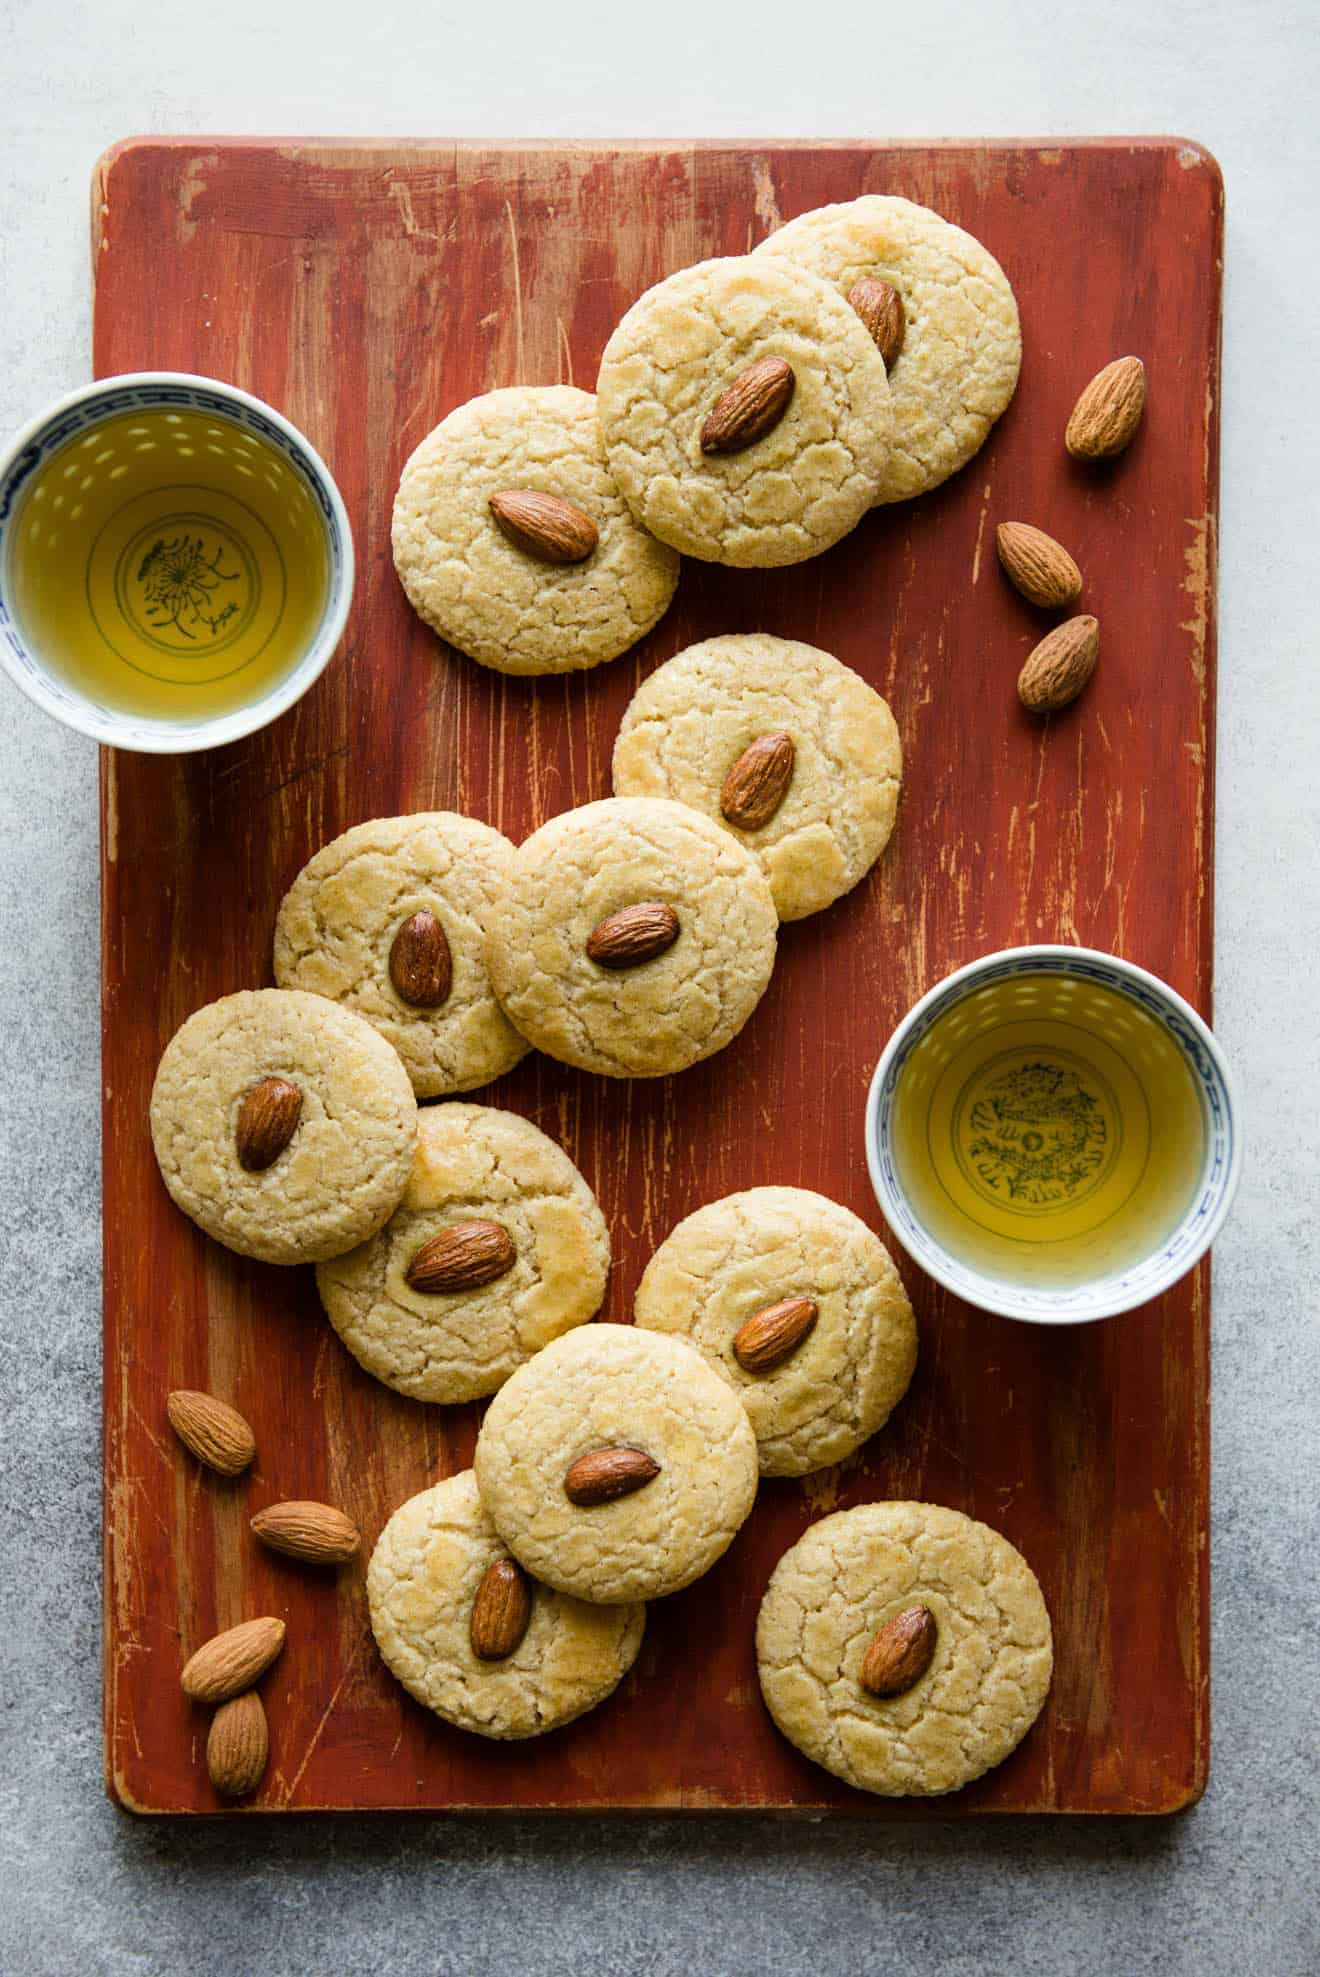 Gluten-Free Chinese Almond Cookies - great for the holiday season or for any party! #dessert #glutenfree